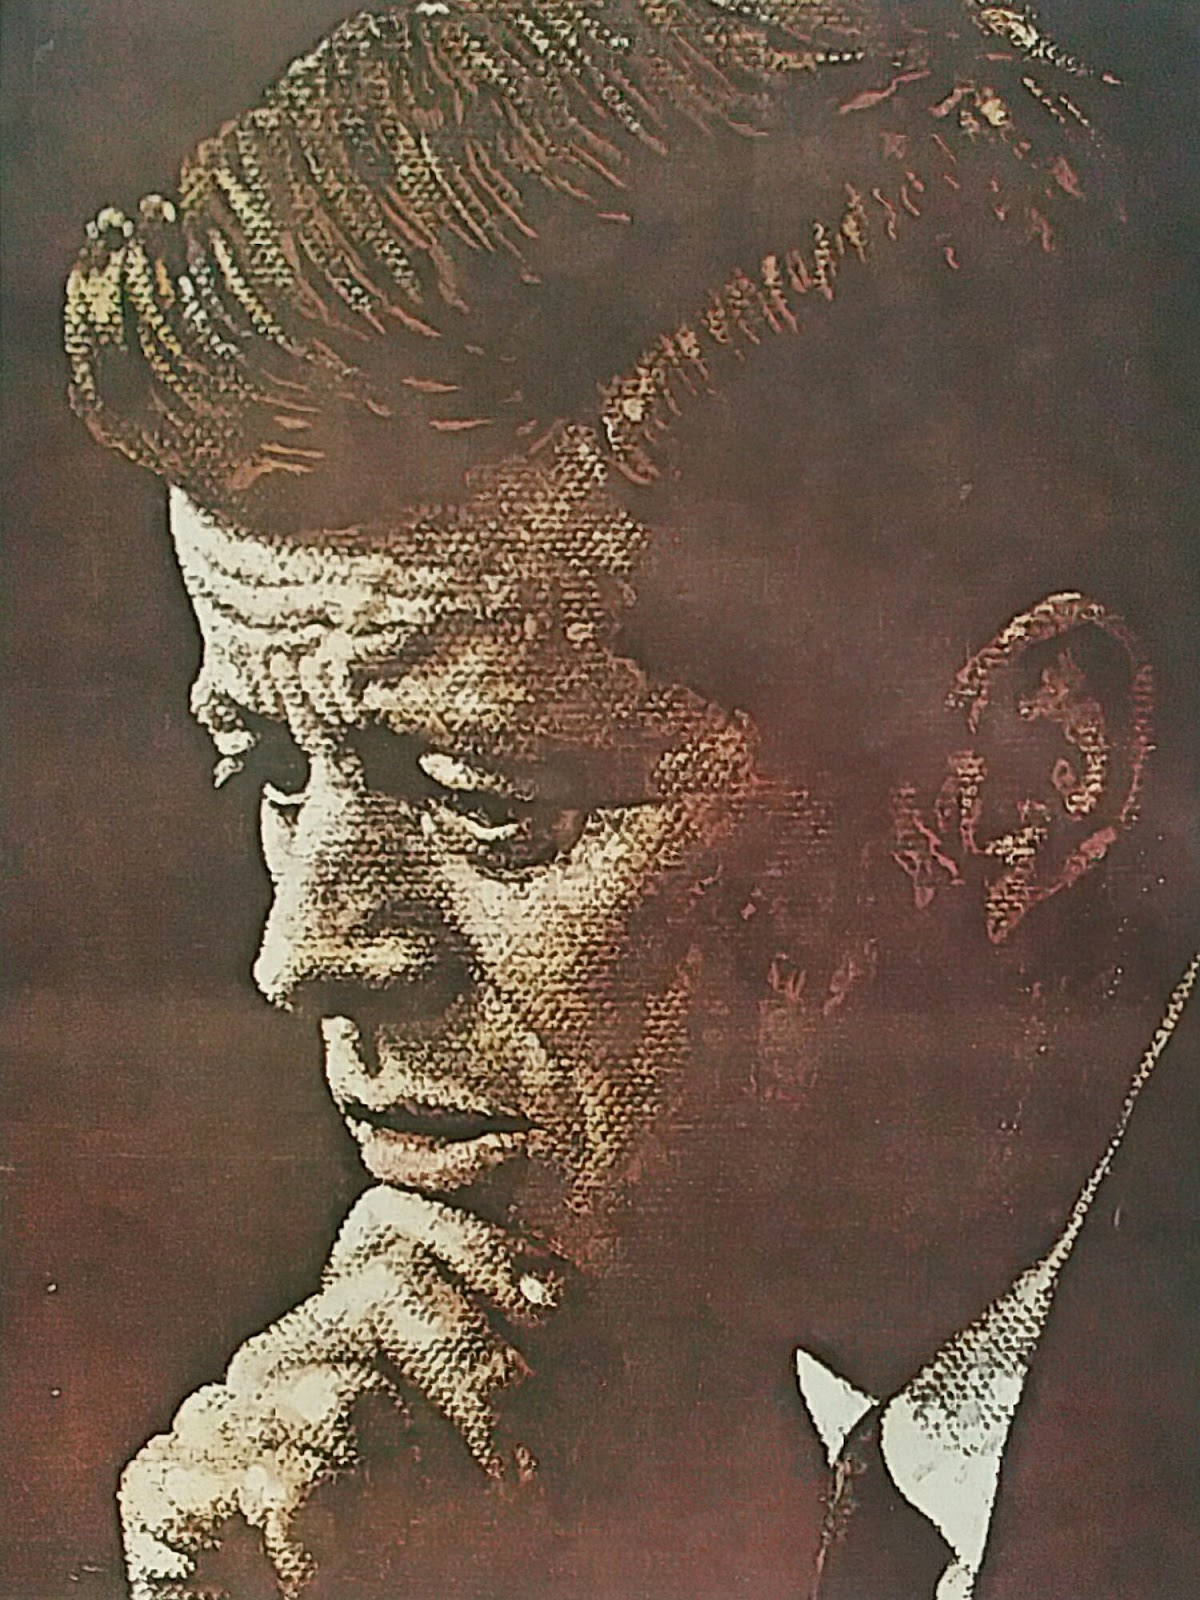 An iconic painting of JFK in thoughtful repose, by Norman Rockwell.